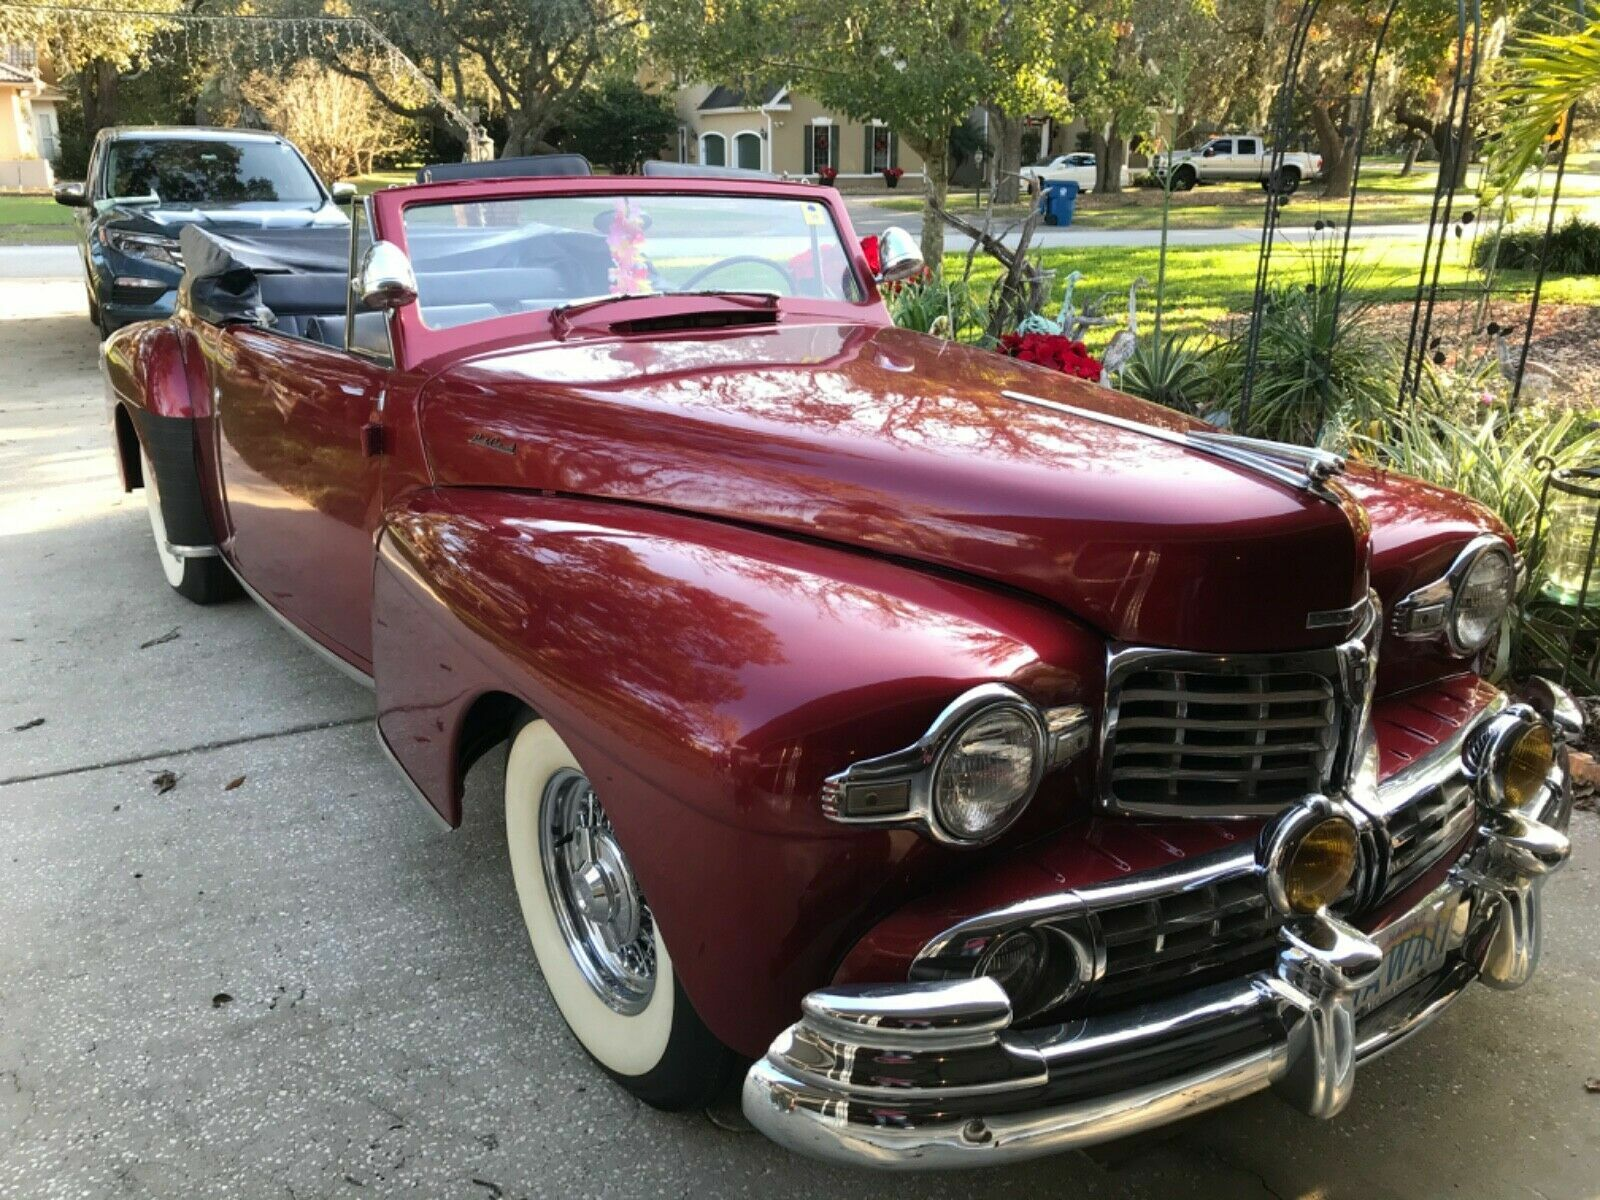 1947 Lincoln Town Car Convertible 1947 Lincoln Town Car Convertible, Such A Beauty!!